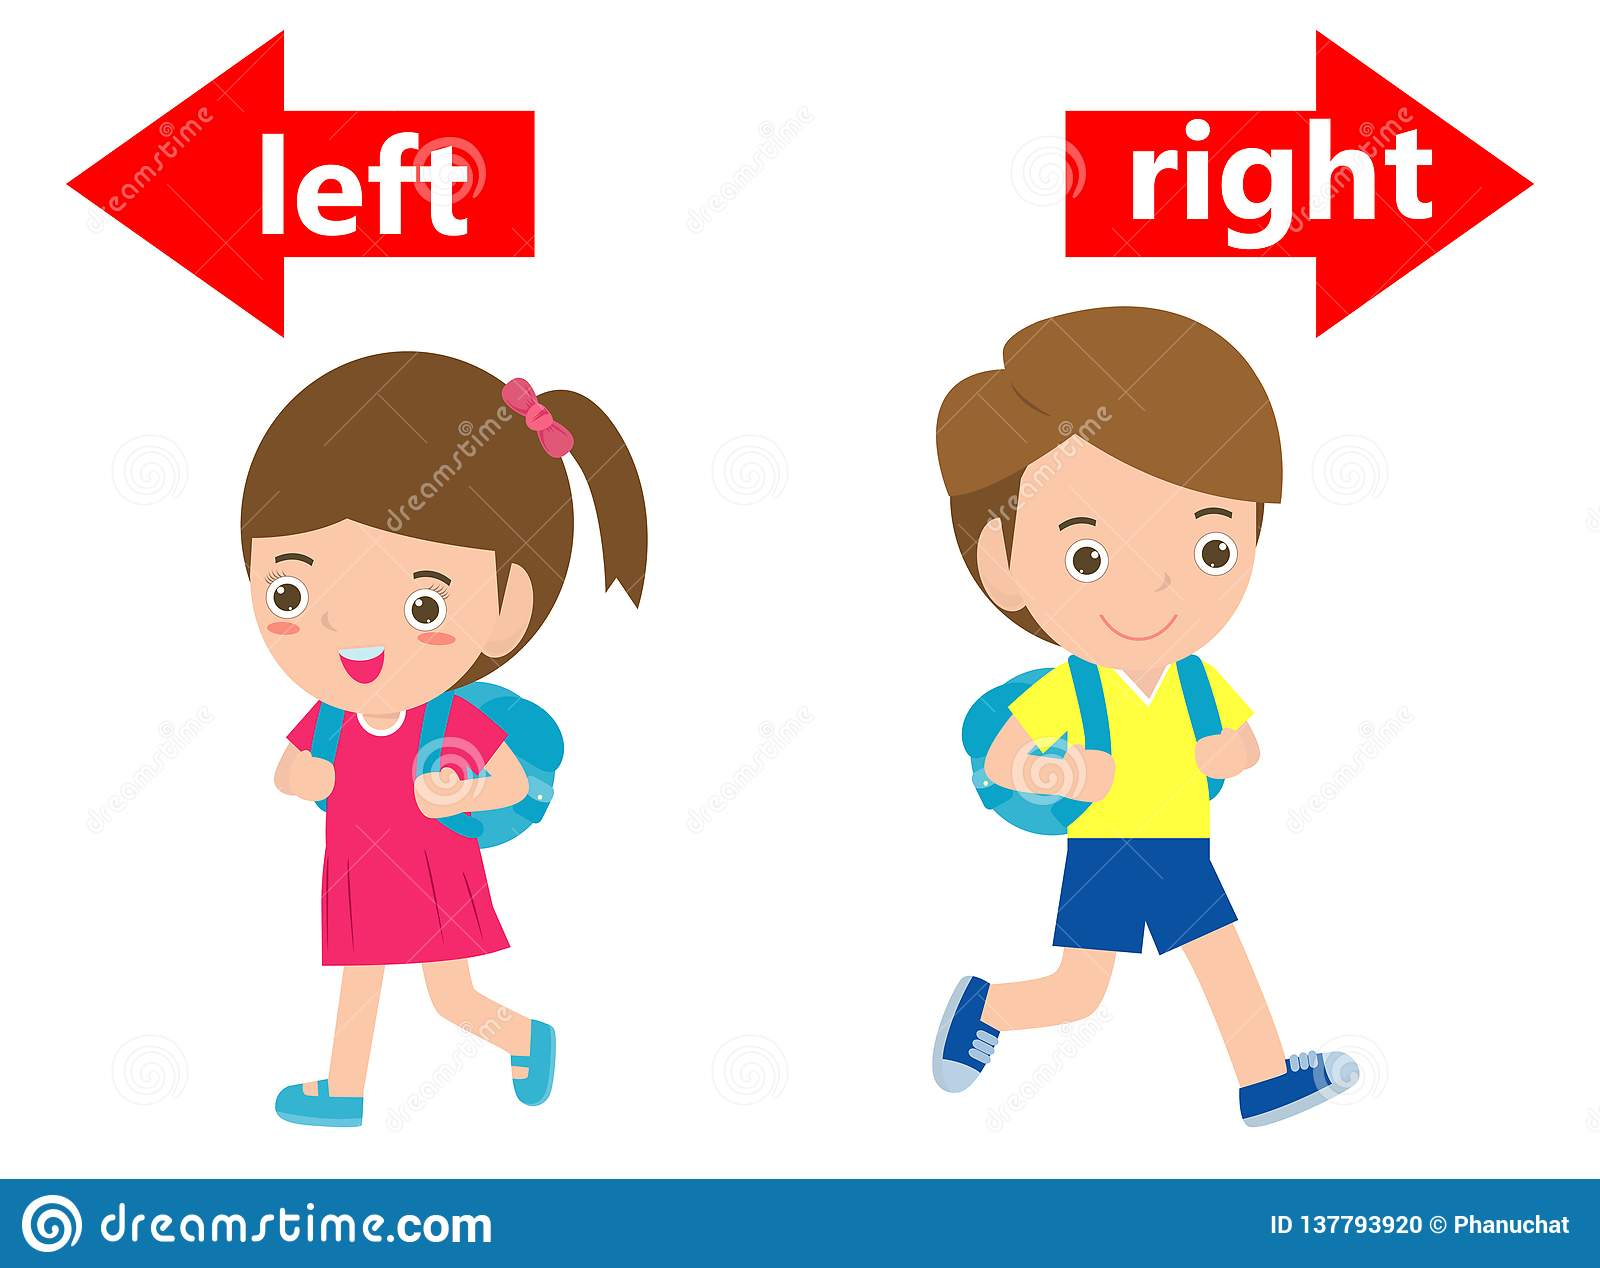 Opposite left and right, Girl on the left and boy on the right on white background,sign left and right illustration vector.